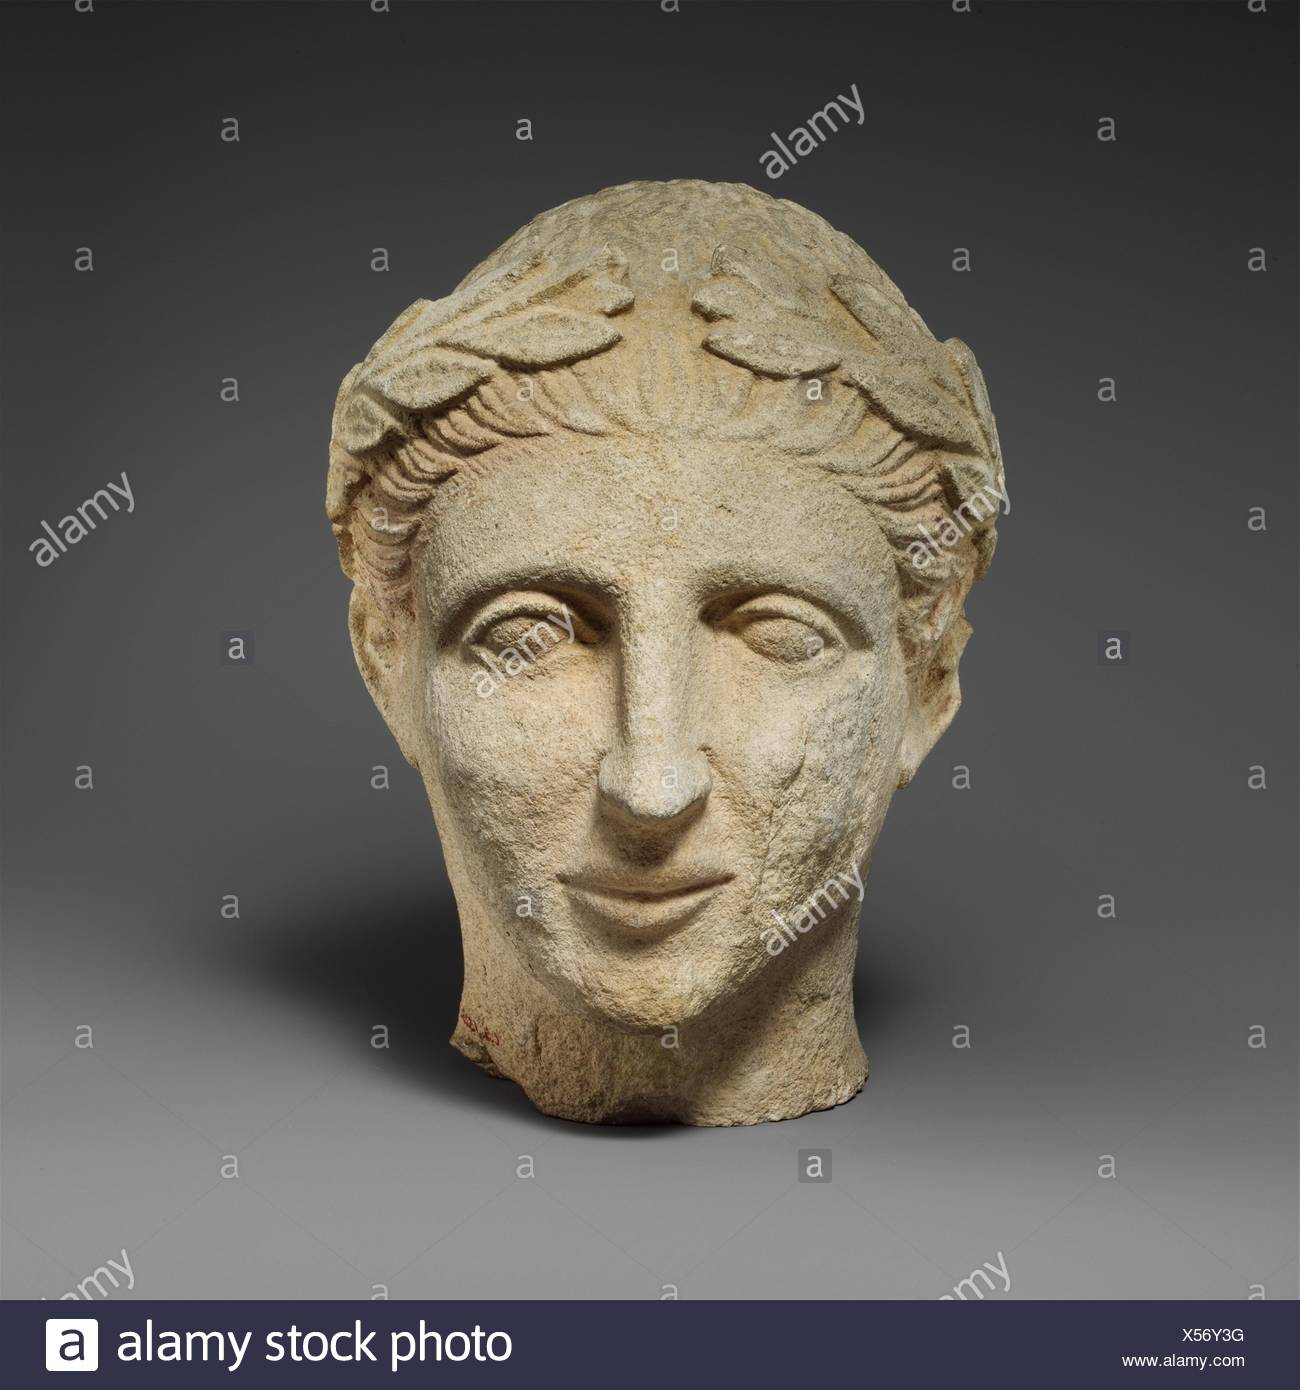 Limestone head of a beardless male votary with a wreath of leaves. Period: Hellenistic; Date: 2nd half of the 4th century B.C; Culture: Cypriot; Stock Photo